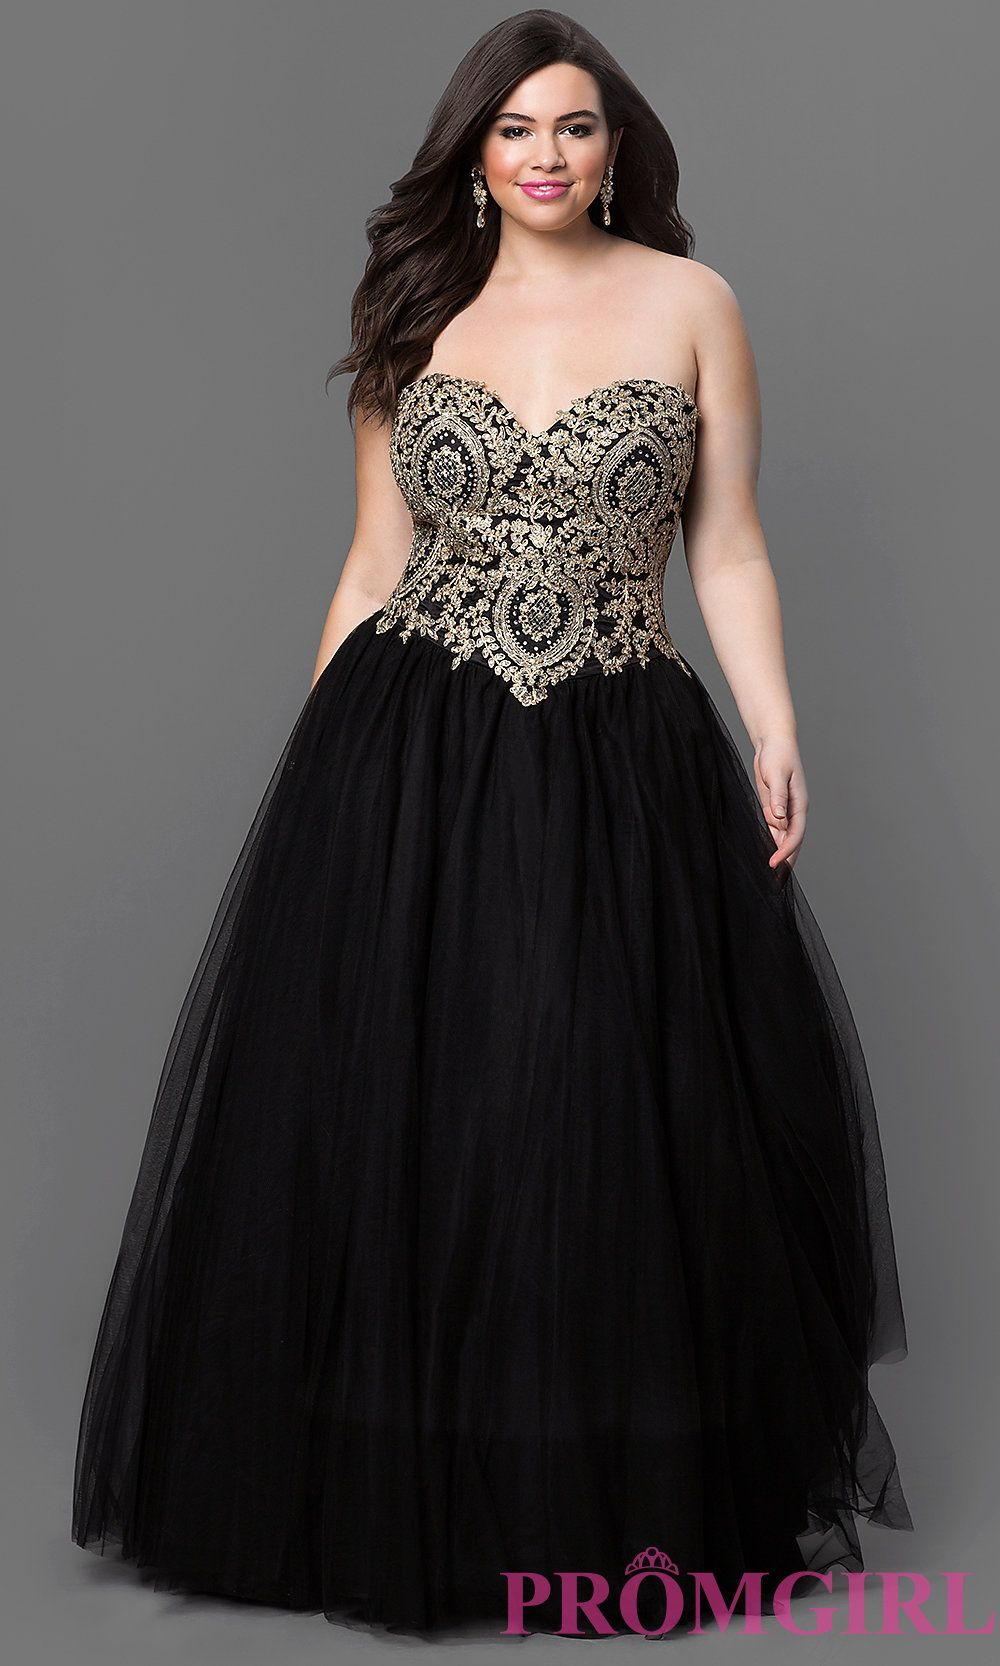 12 Plus Size Stores That Carry Prom Dresses http://www ...